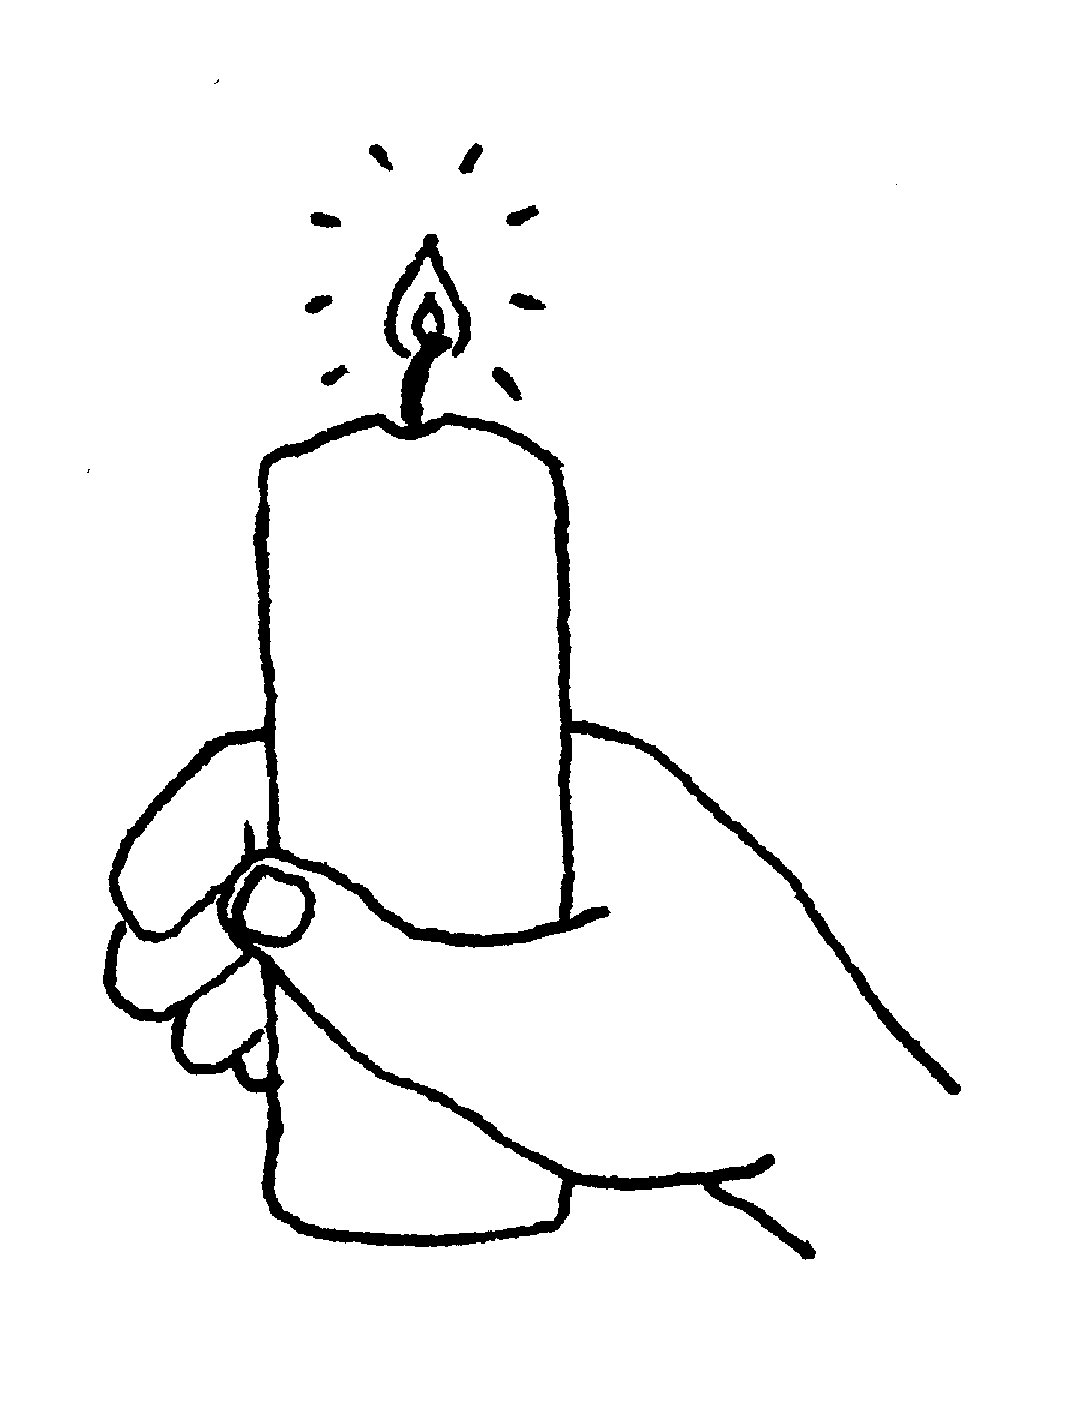 Free candles clip art free clipart images image